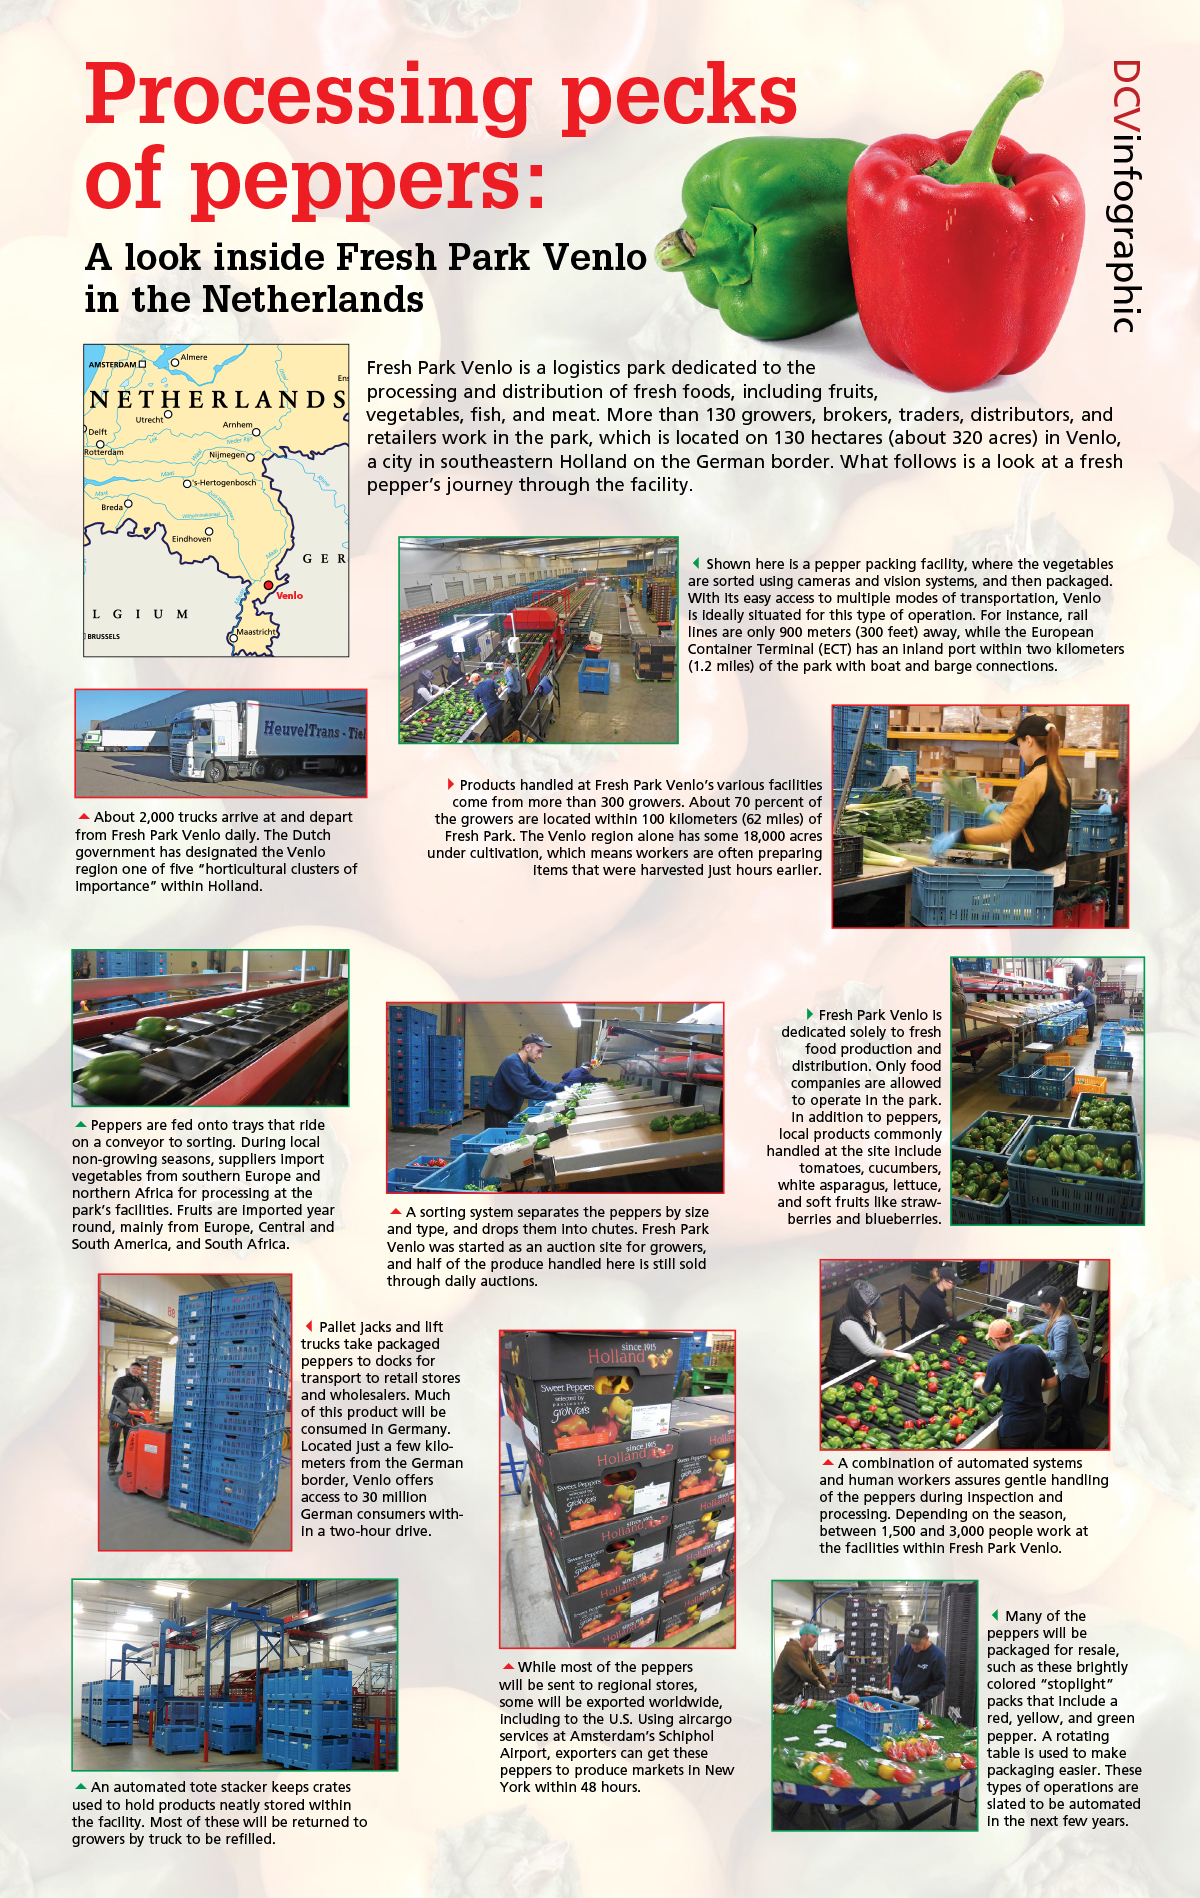 DCV Infographic: Processing pecks of peppers: A look inside Fresh Park Venlo in the Netherlands. This logistics park is dedicated to the processing and distribution of fresh foods. Here's is a look at a fresh pepper's journey through the facility.